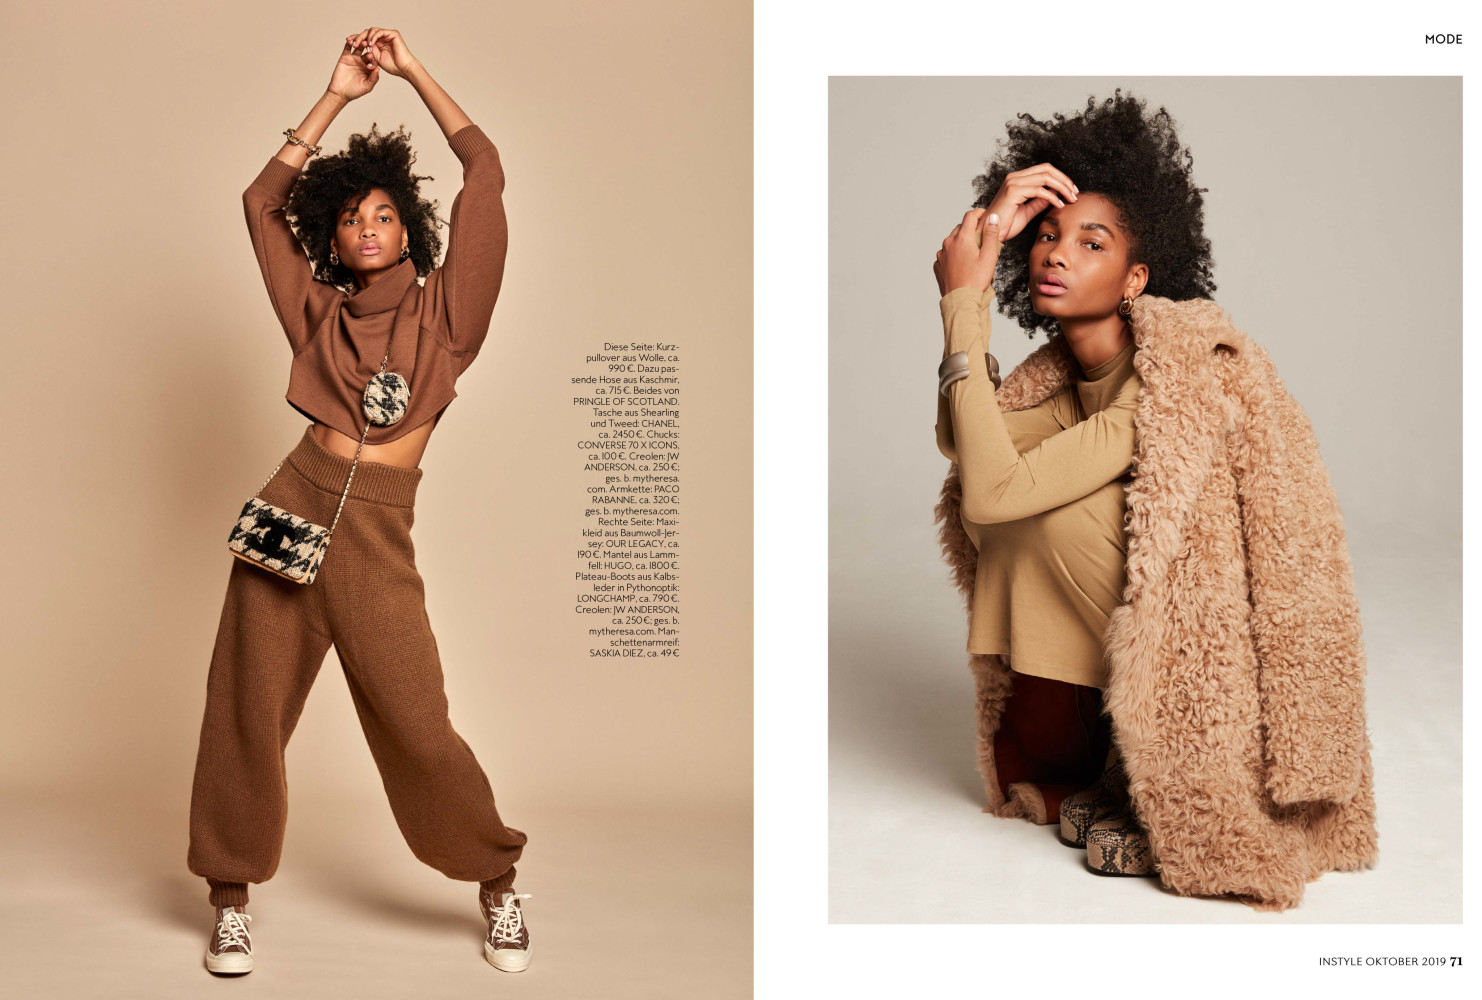 Danyrose For Instyle Germany